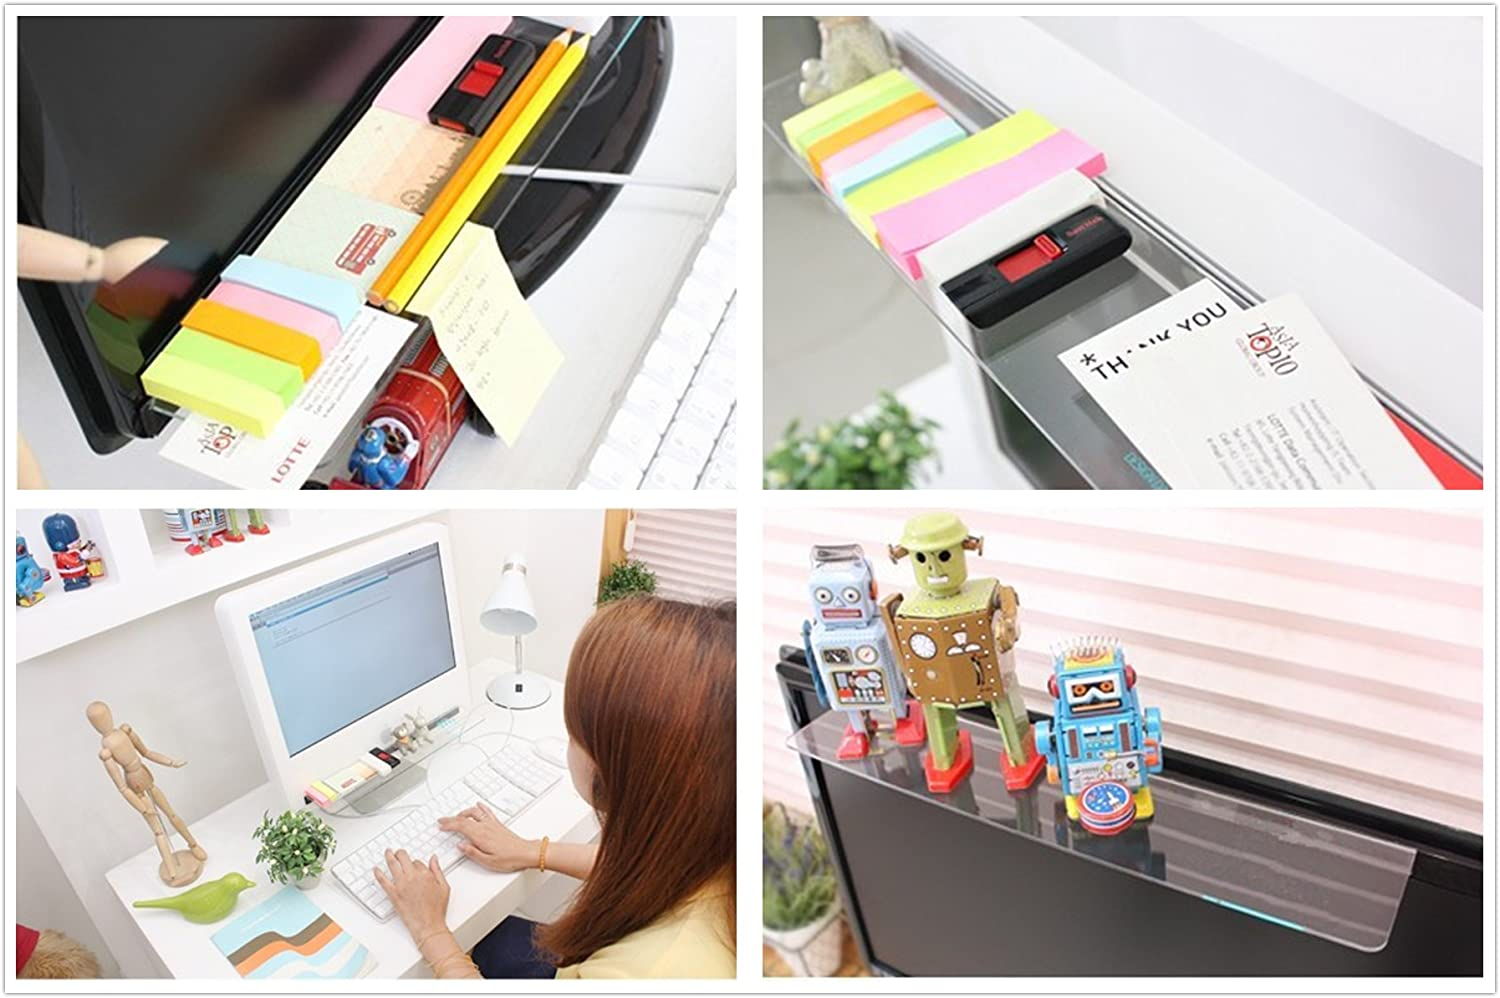 Excelity Fashion Computer Monitor Organizer Rack Transparent Message Board Sticky Board